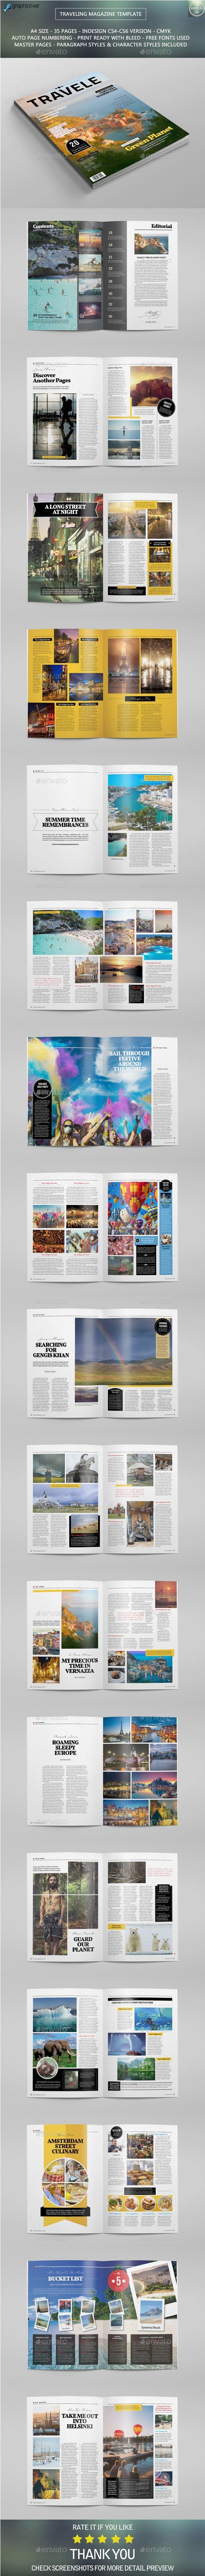 GraphicRiver Traveling Magazine Template 10764387